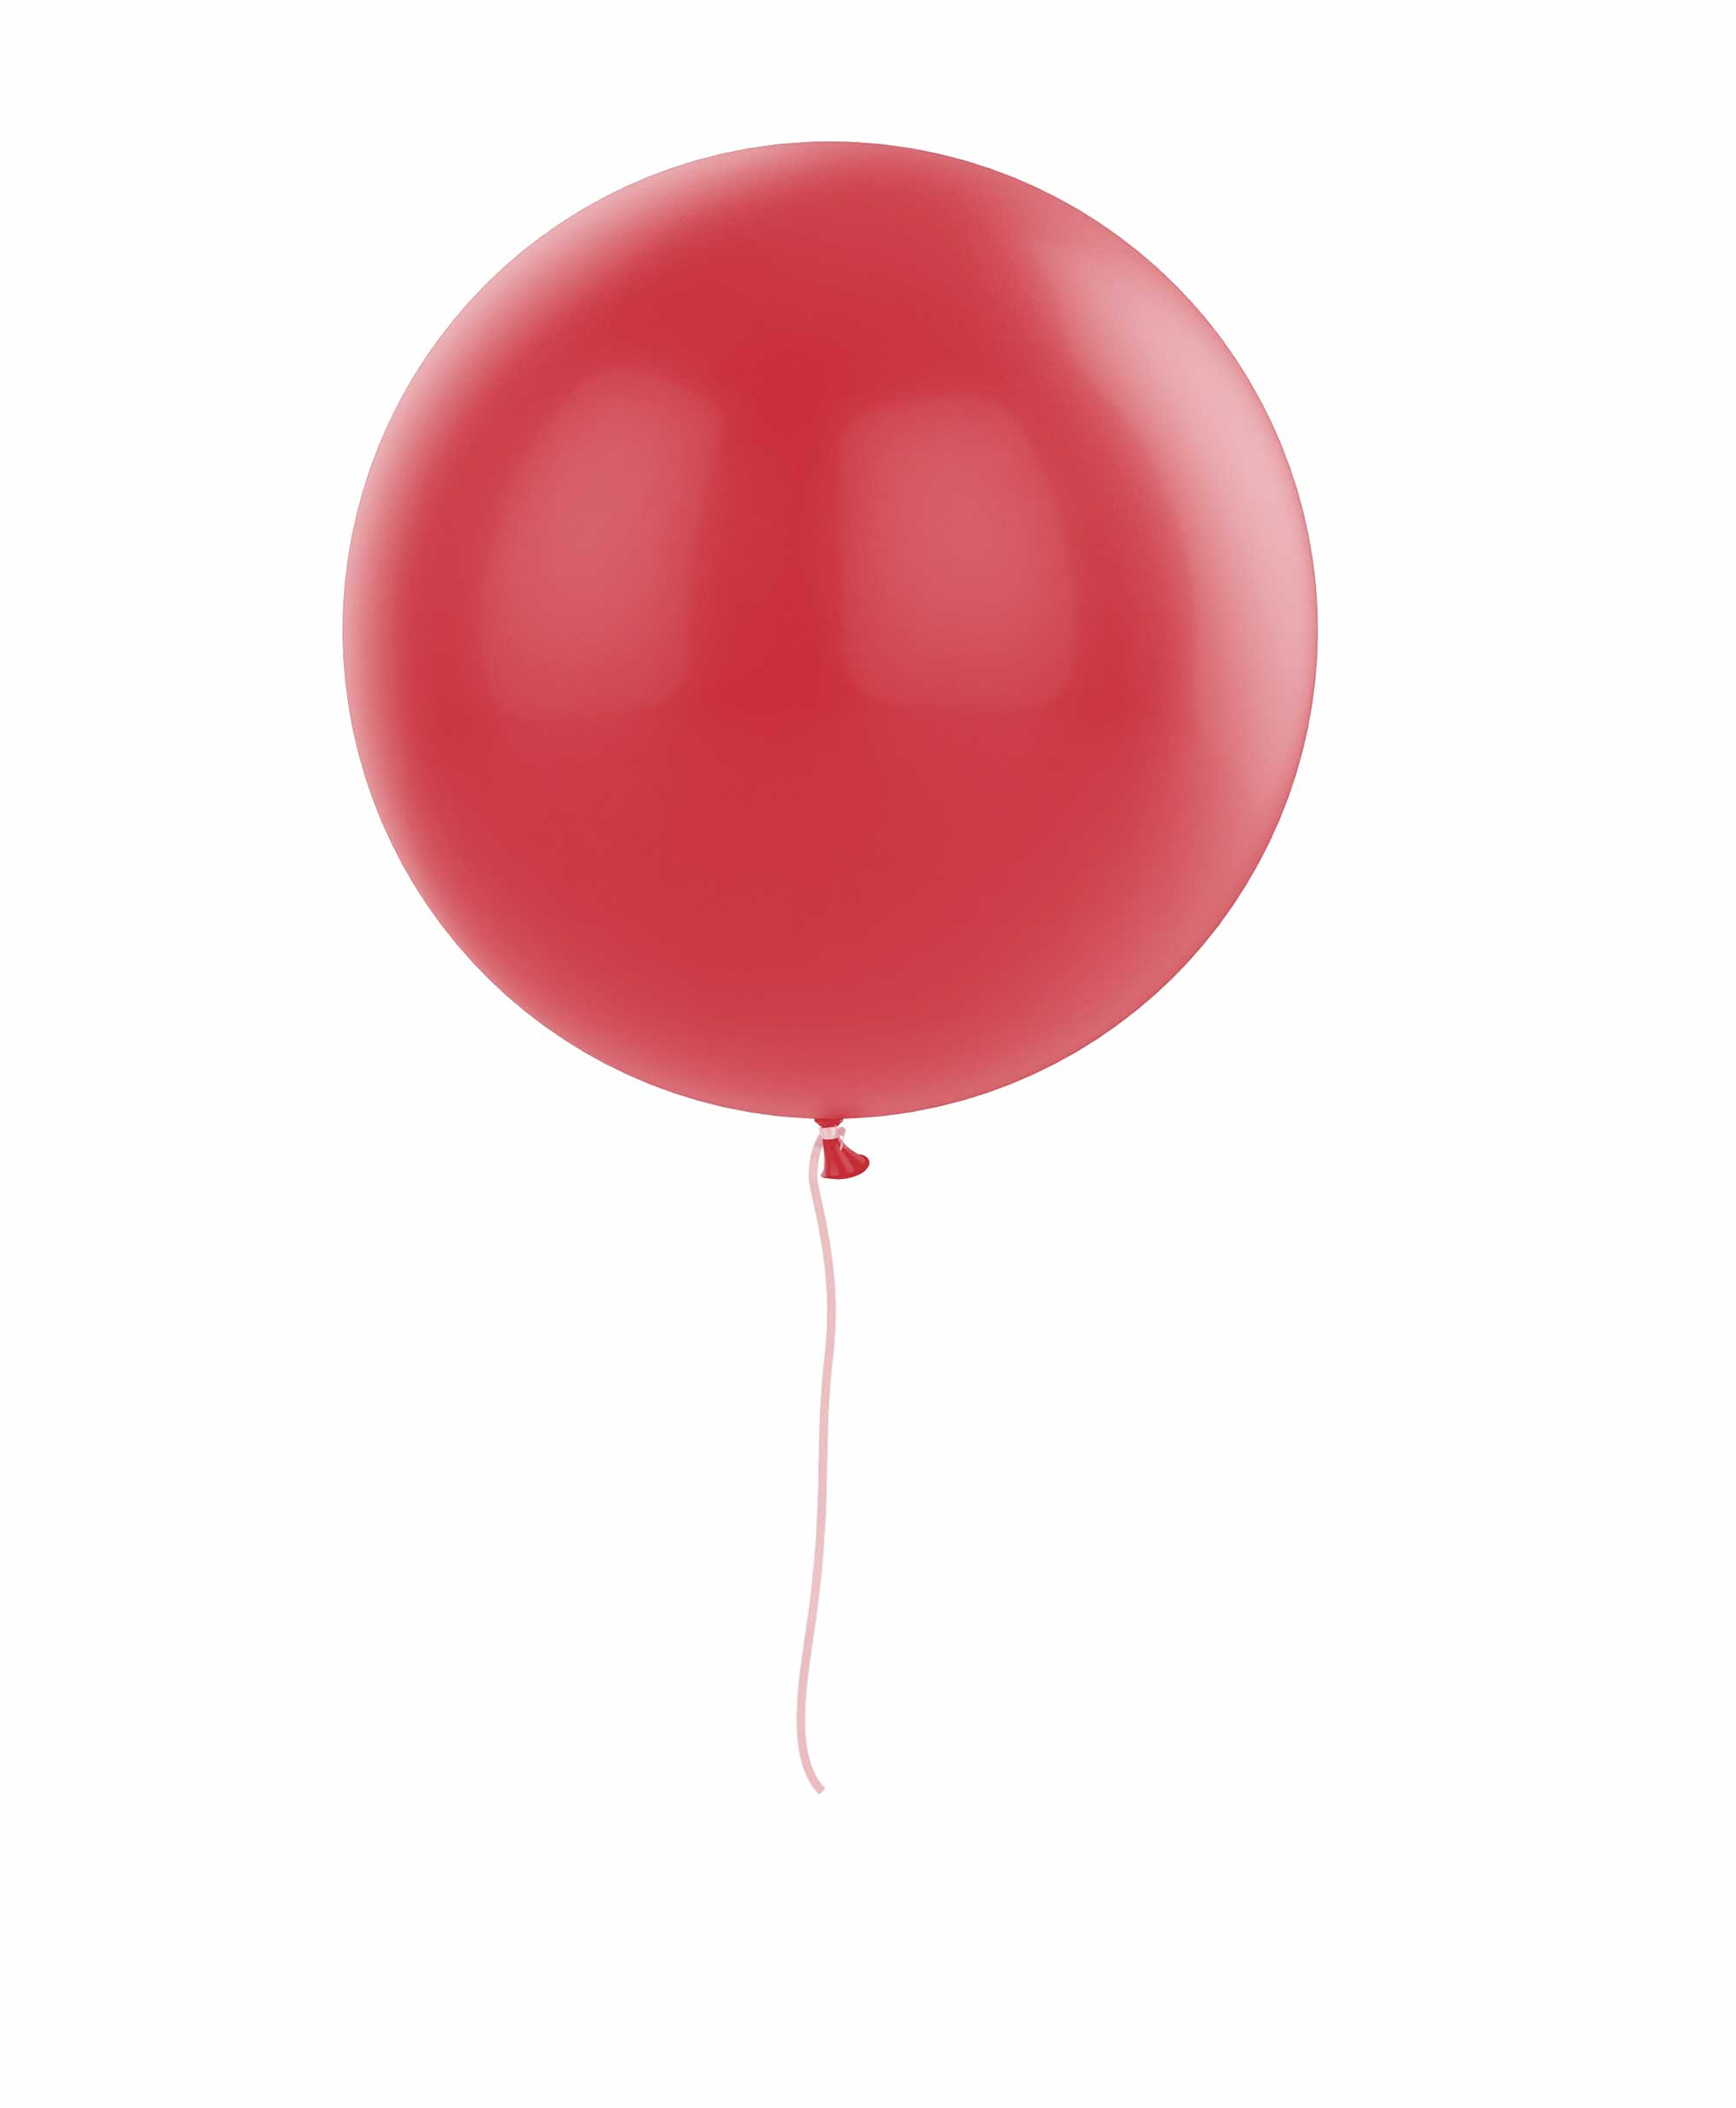 "Red balloon 36"" - Raspberry theme"